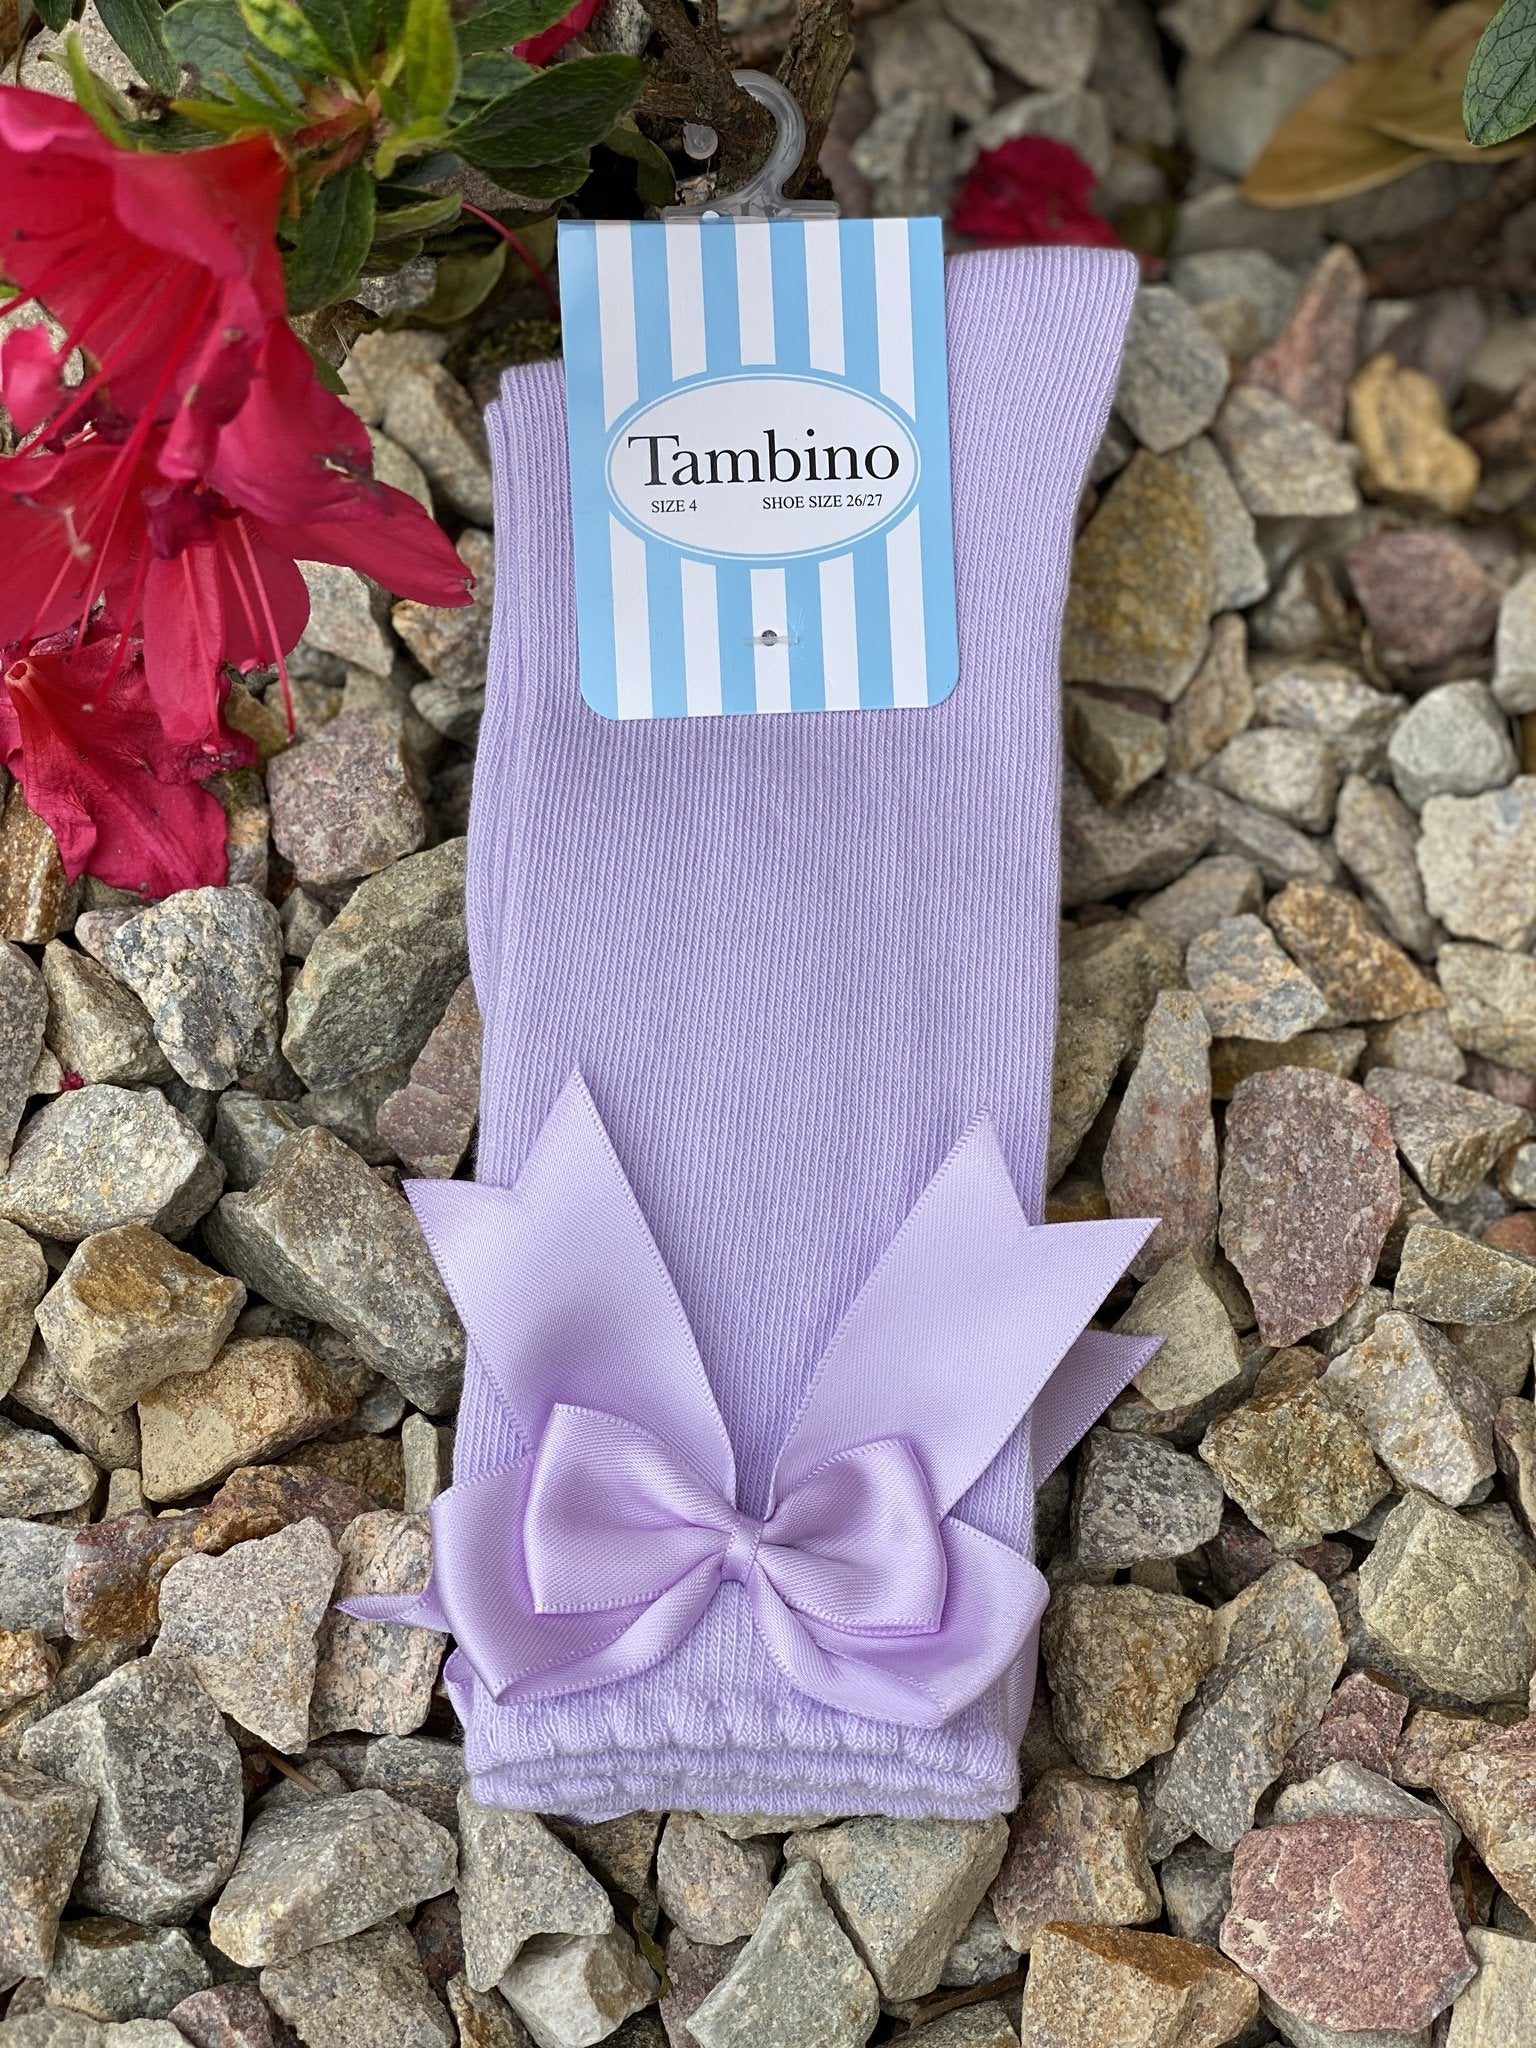 Tambino Girls Double Bow Socks  Funky kids - Magherafelt